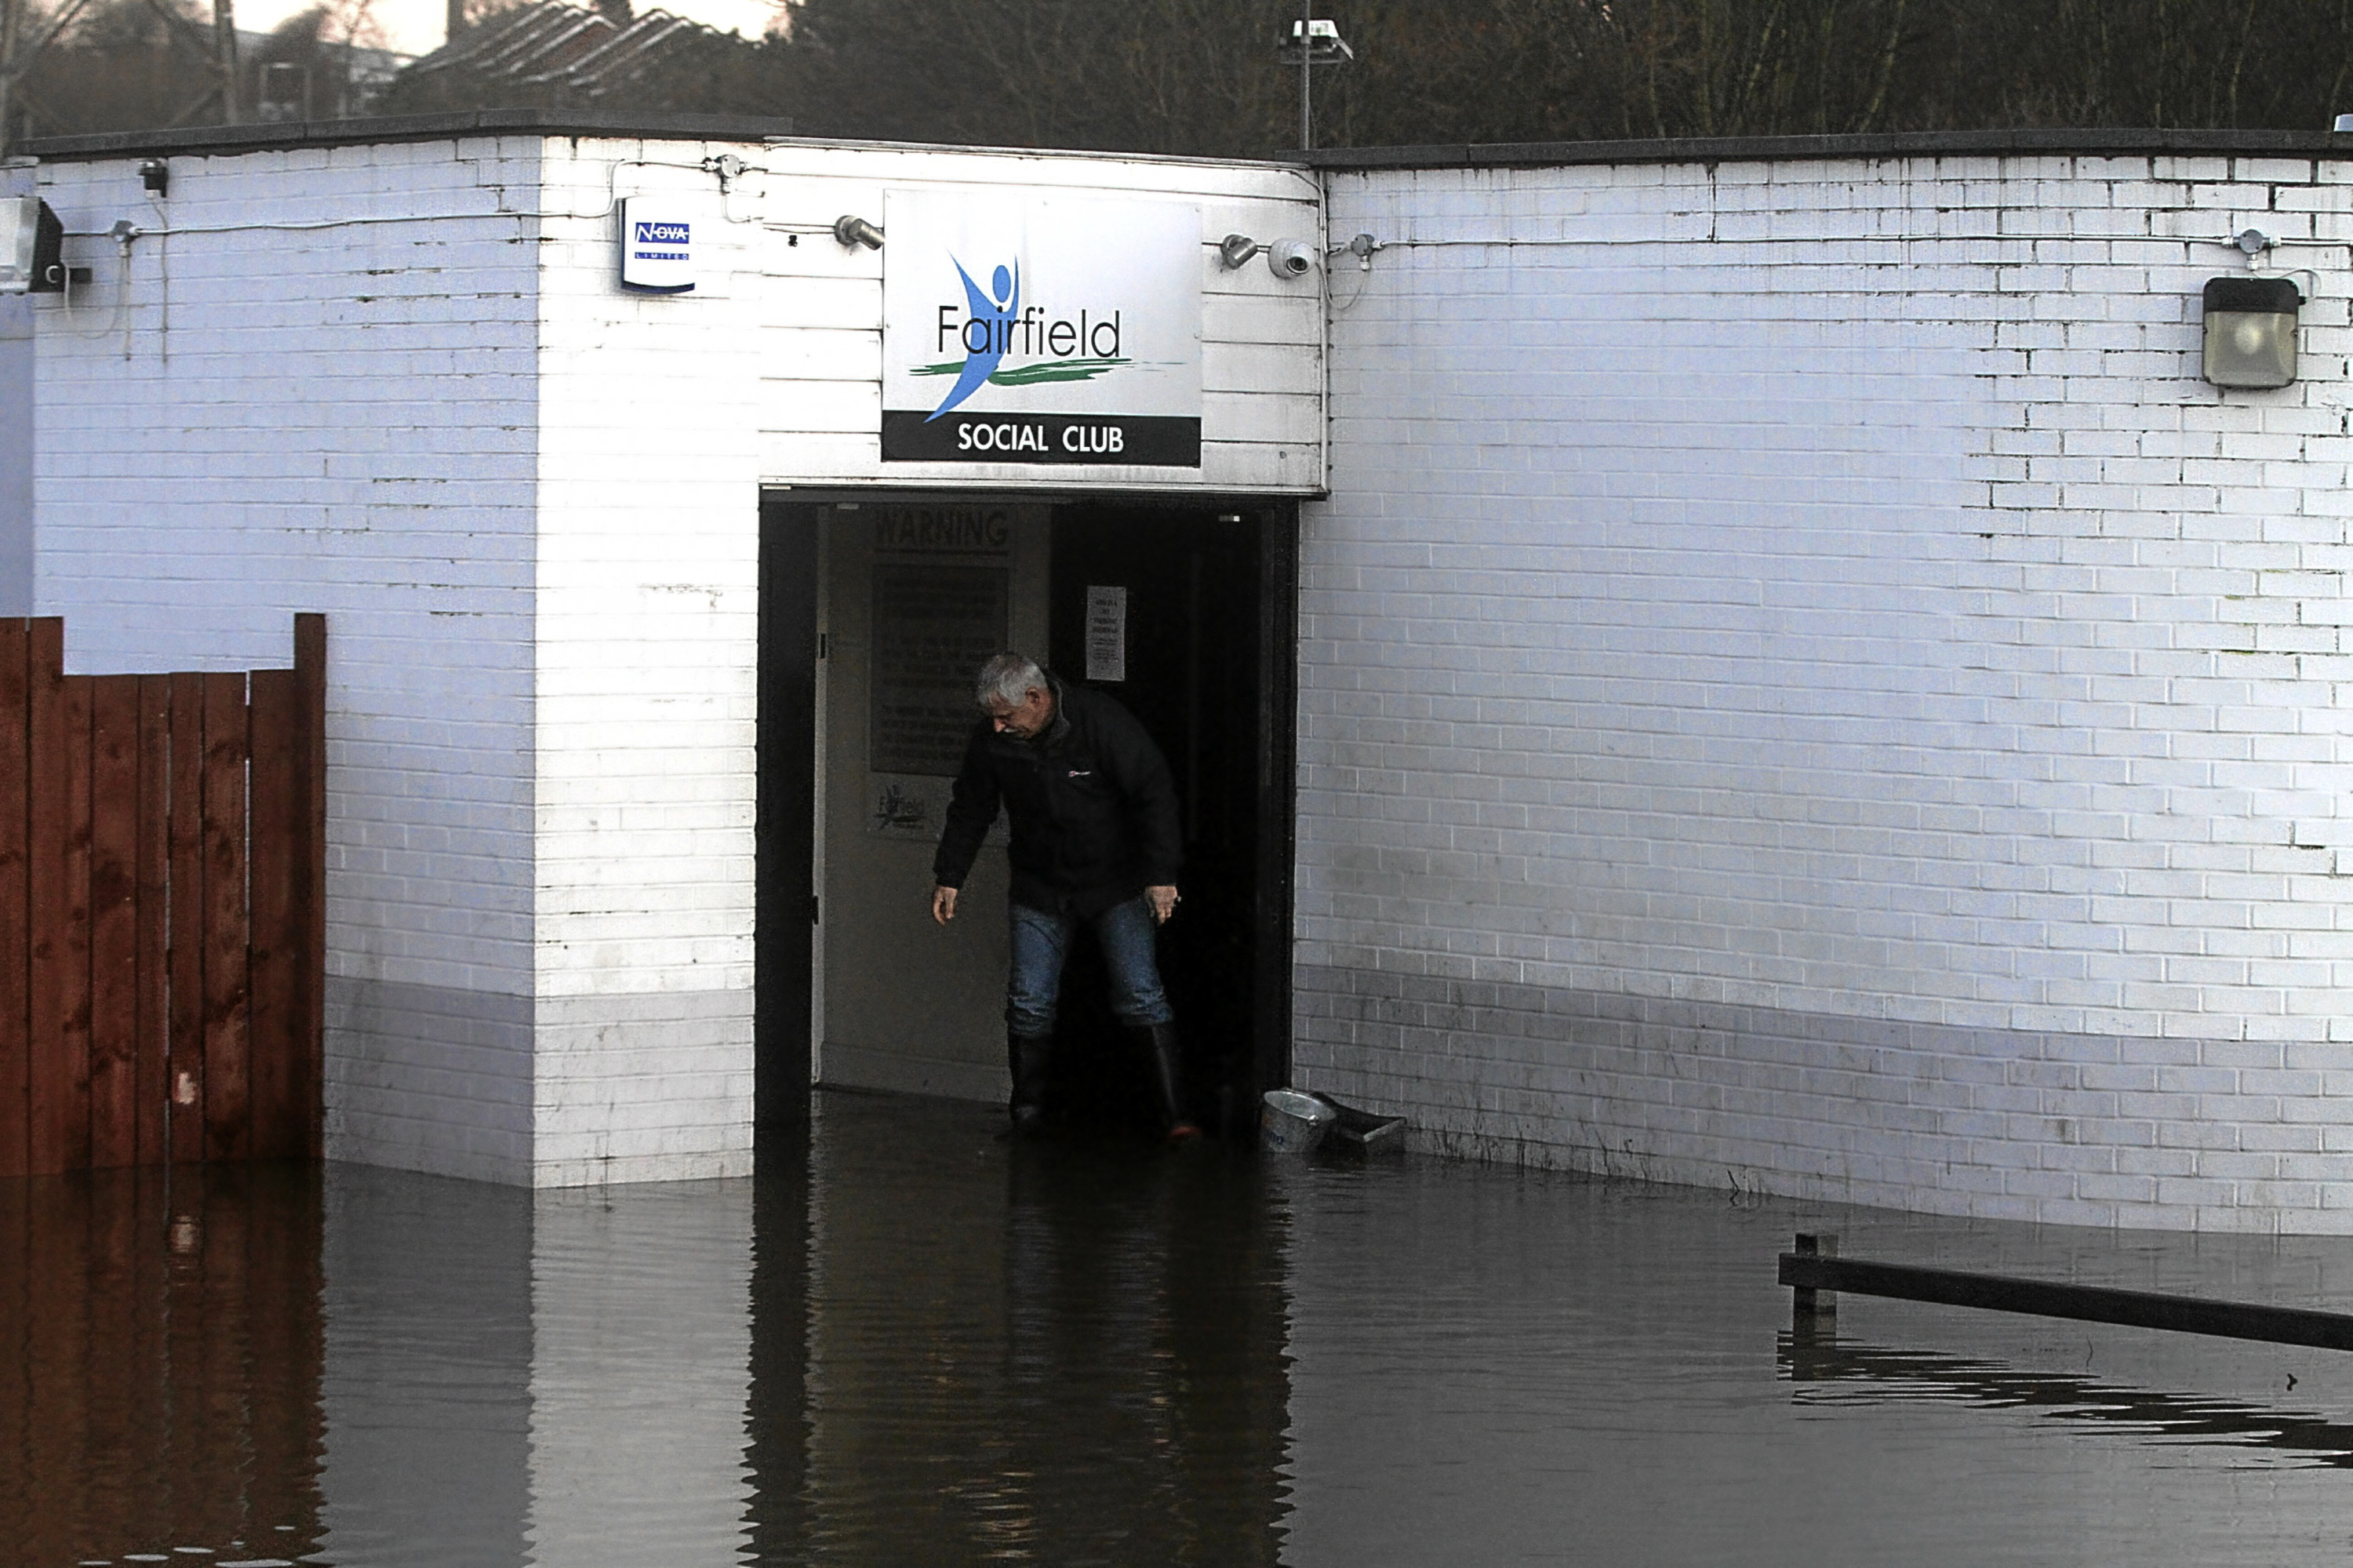 Billy Sorrie, brother of Jim, assesses damage to Fairfield Sports and Social Club. The club may never reopen after getting hit by floods in January.